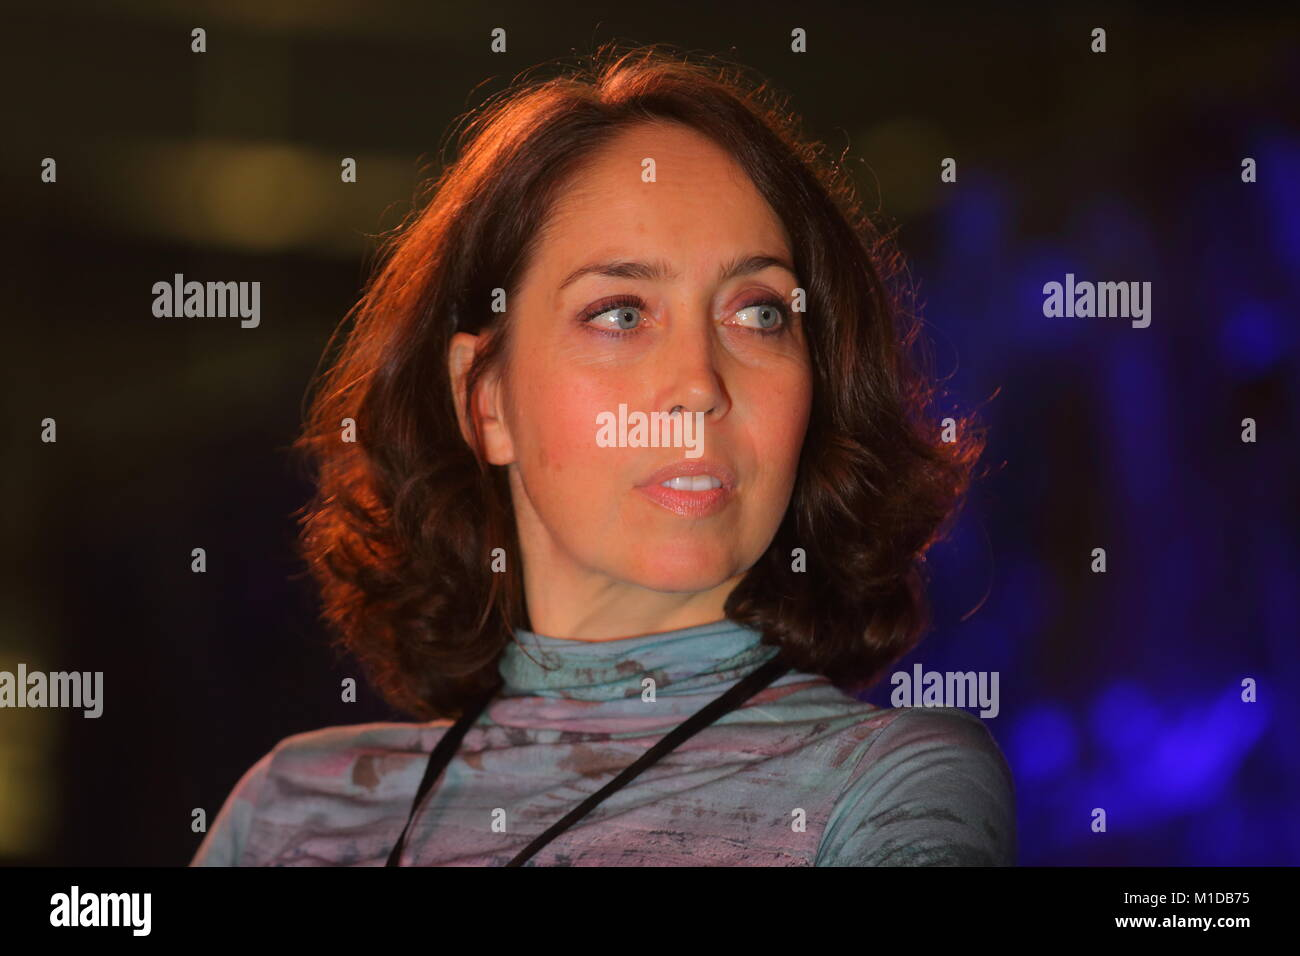 Nathalie Cuzner Guest Speaker At Ultra Con - Stock Image